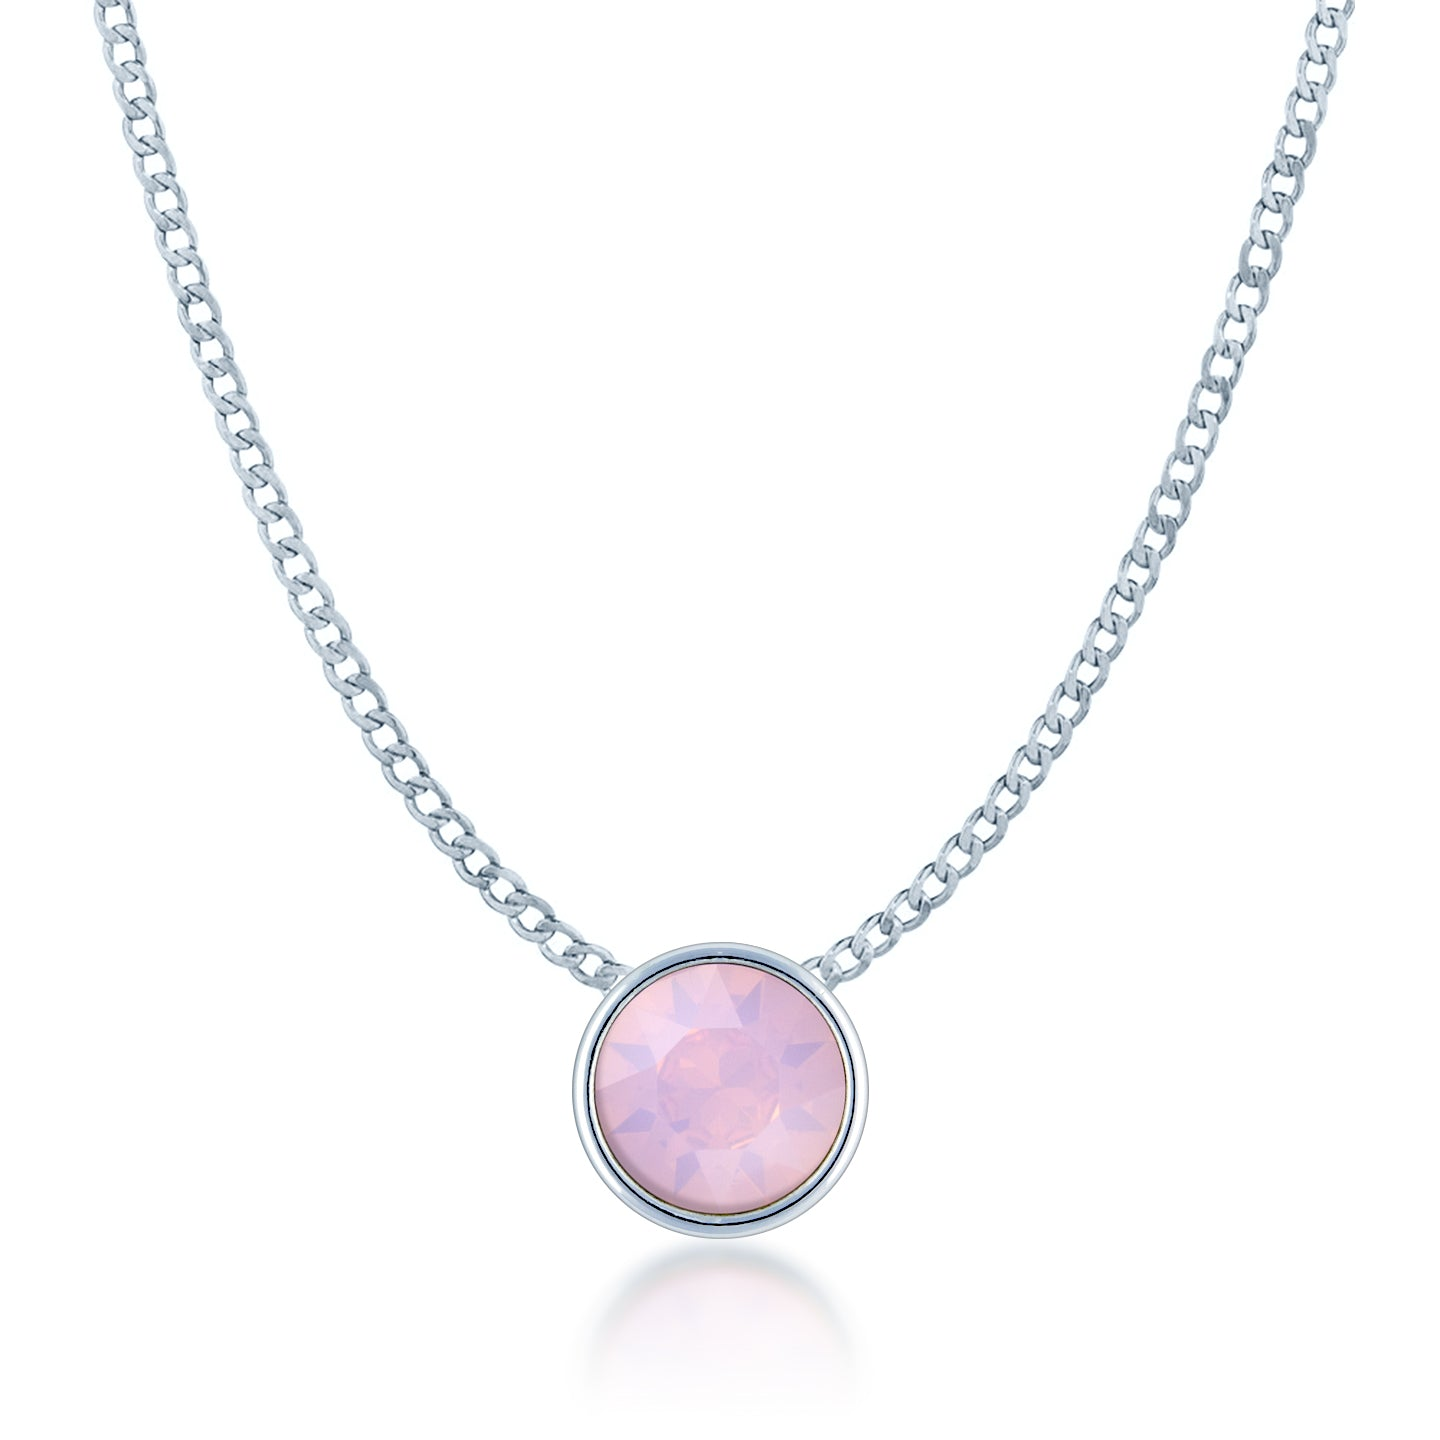 Harley Small Pendant Necklace with Pink Rose Water Round Opals from Swarovski Silver Toned Rhodium Plated - Ed Heart